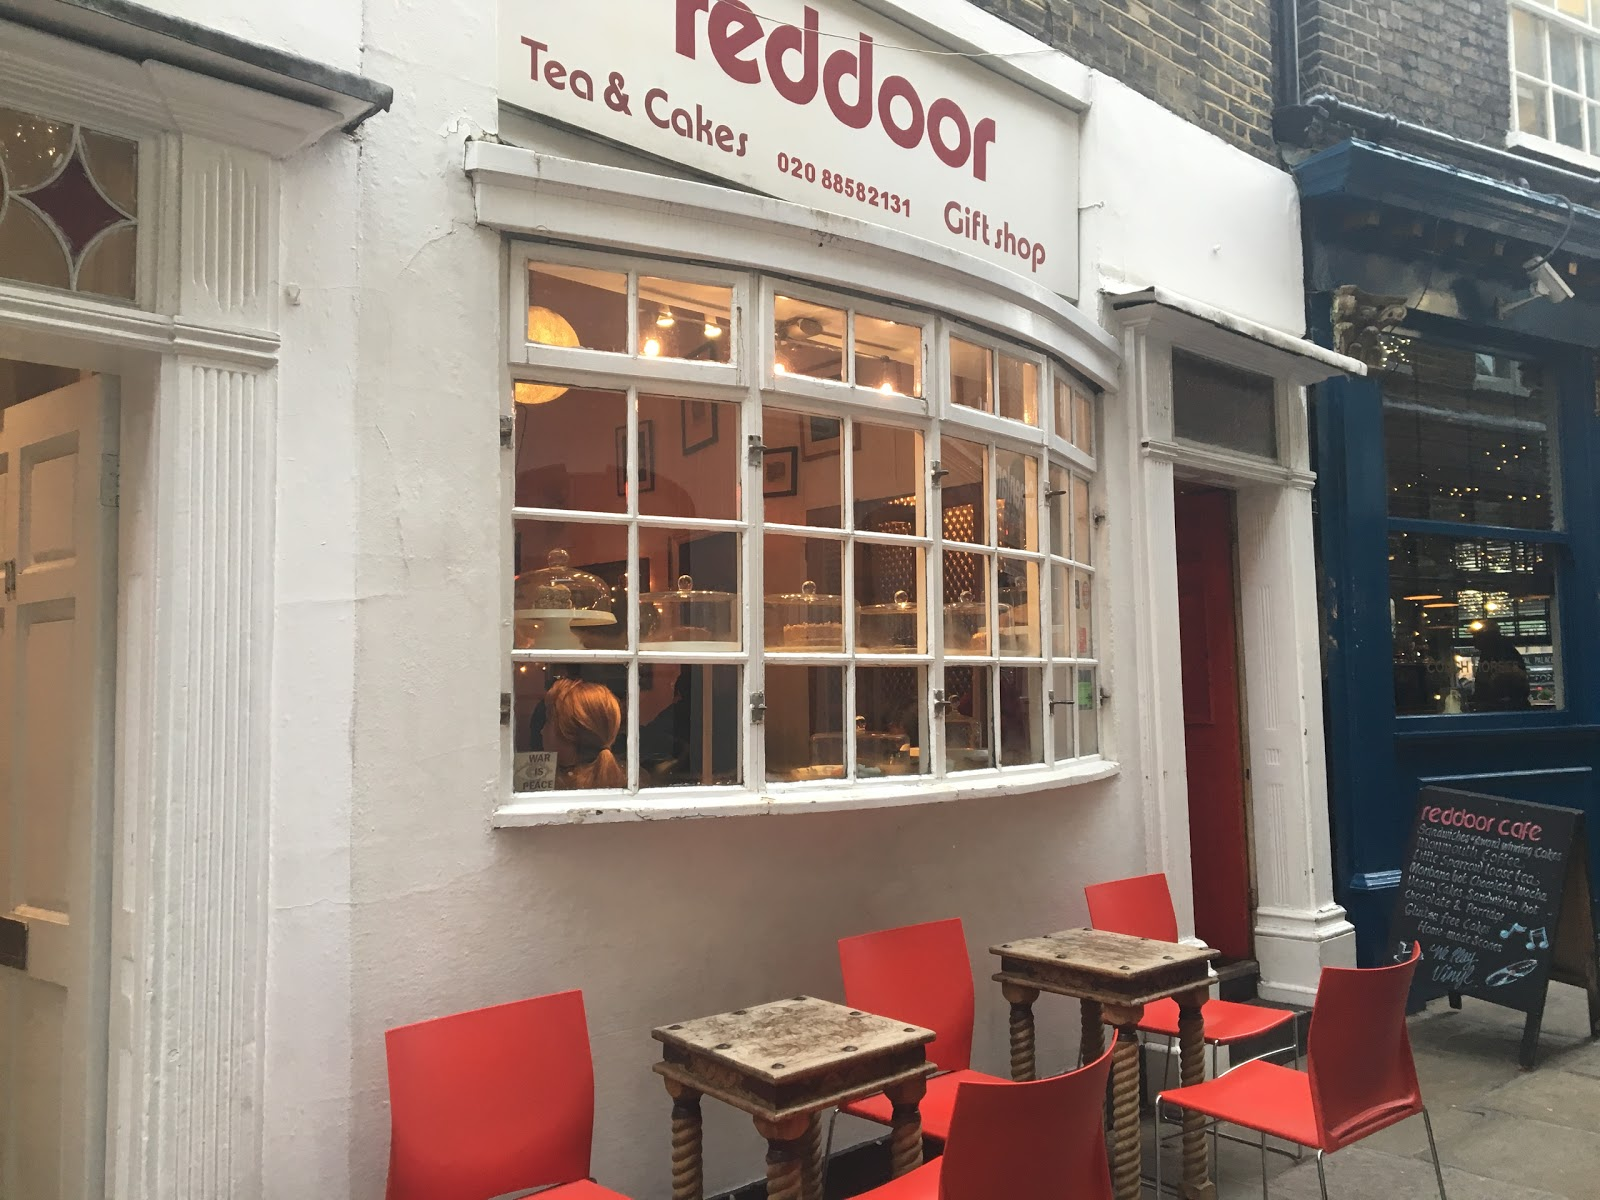 Red Door: A Work-Friendly Place in London